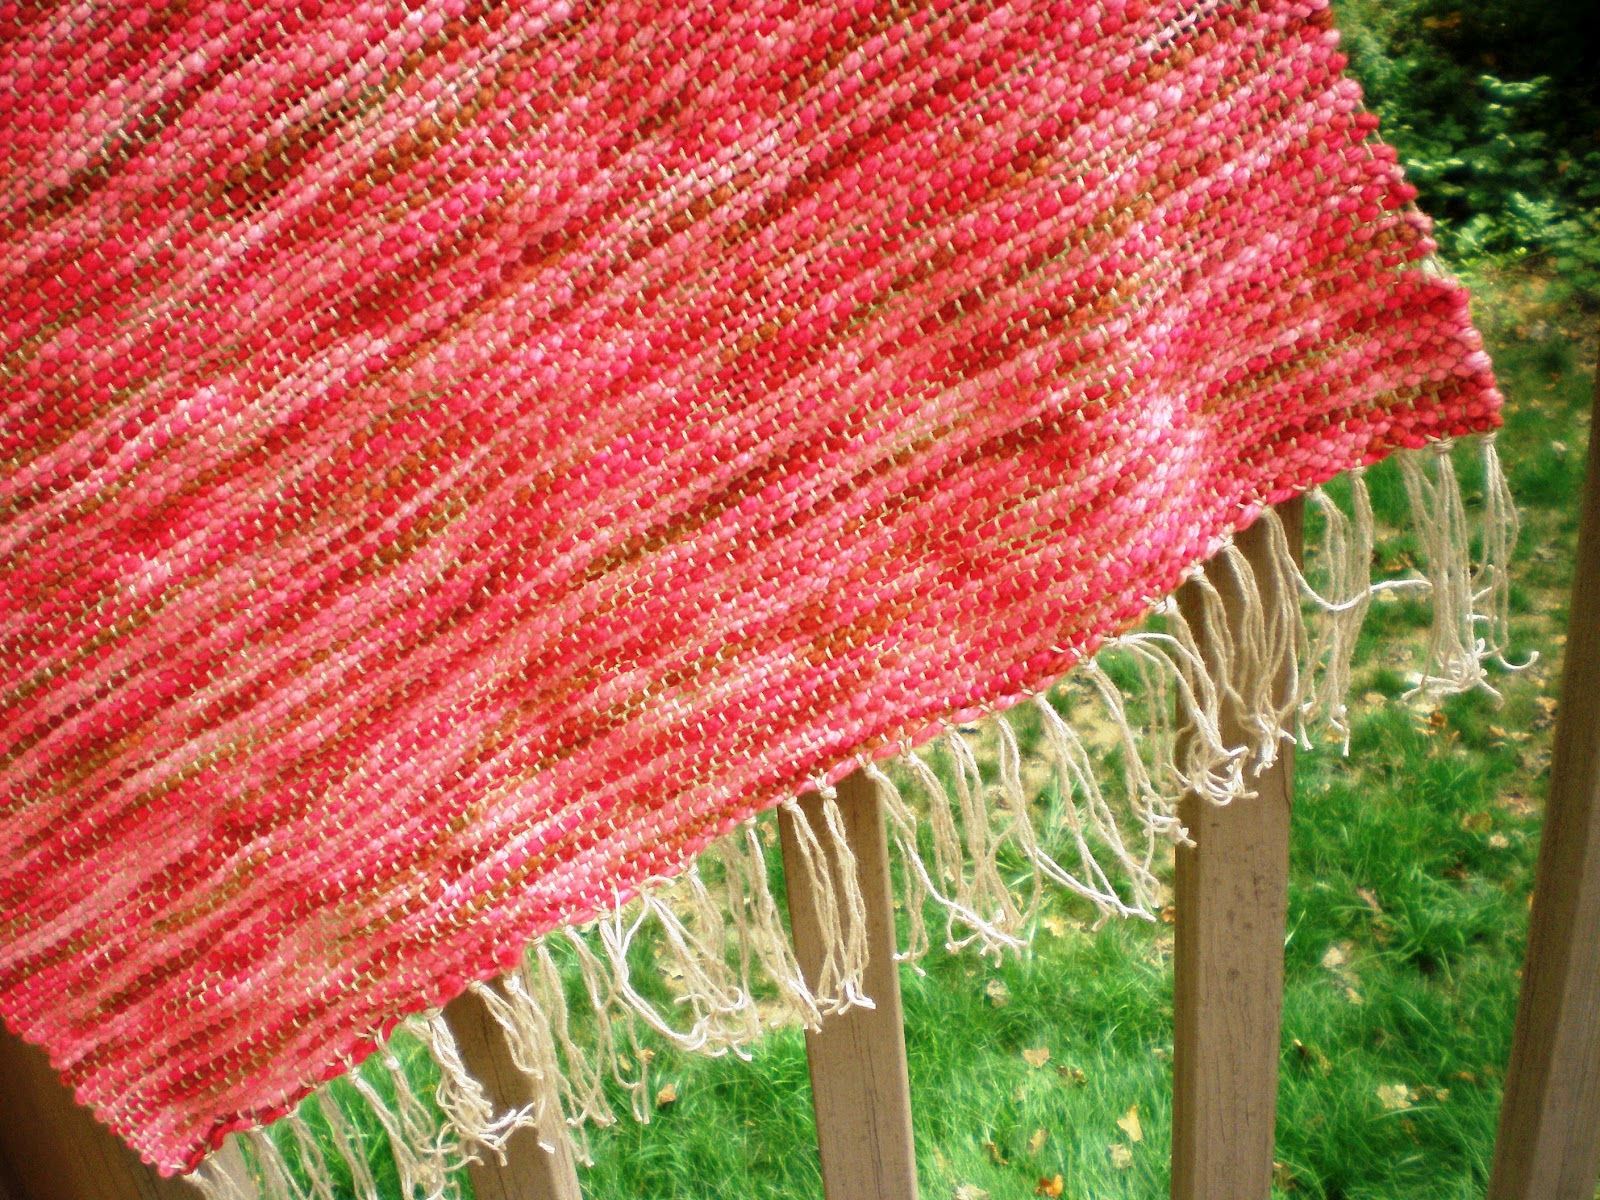 Crochet Pattern For Nursing Shawl : Hooked on Crochet: Off the Loom